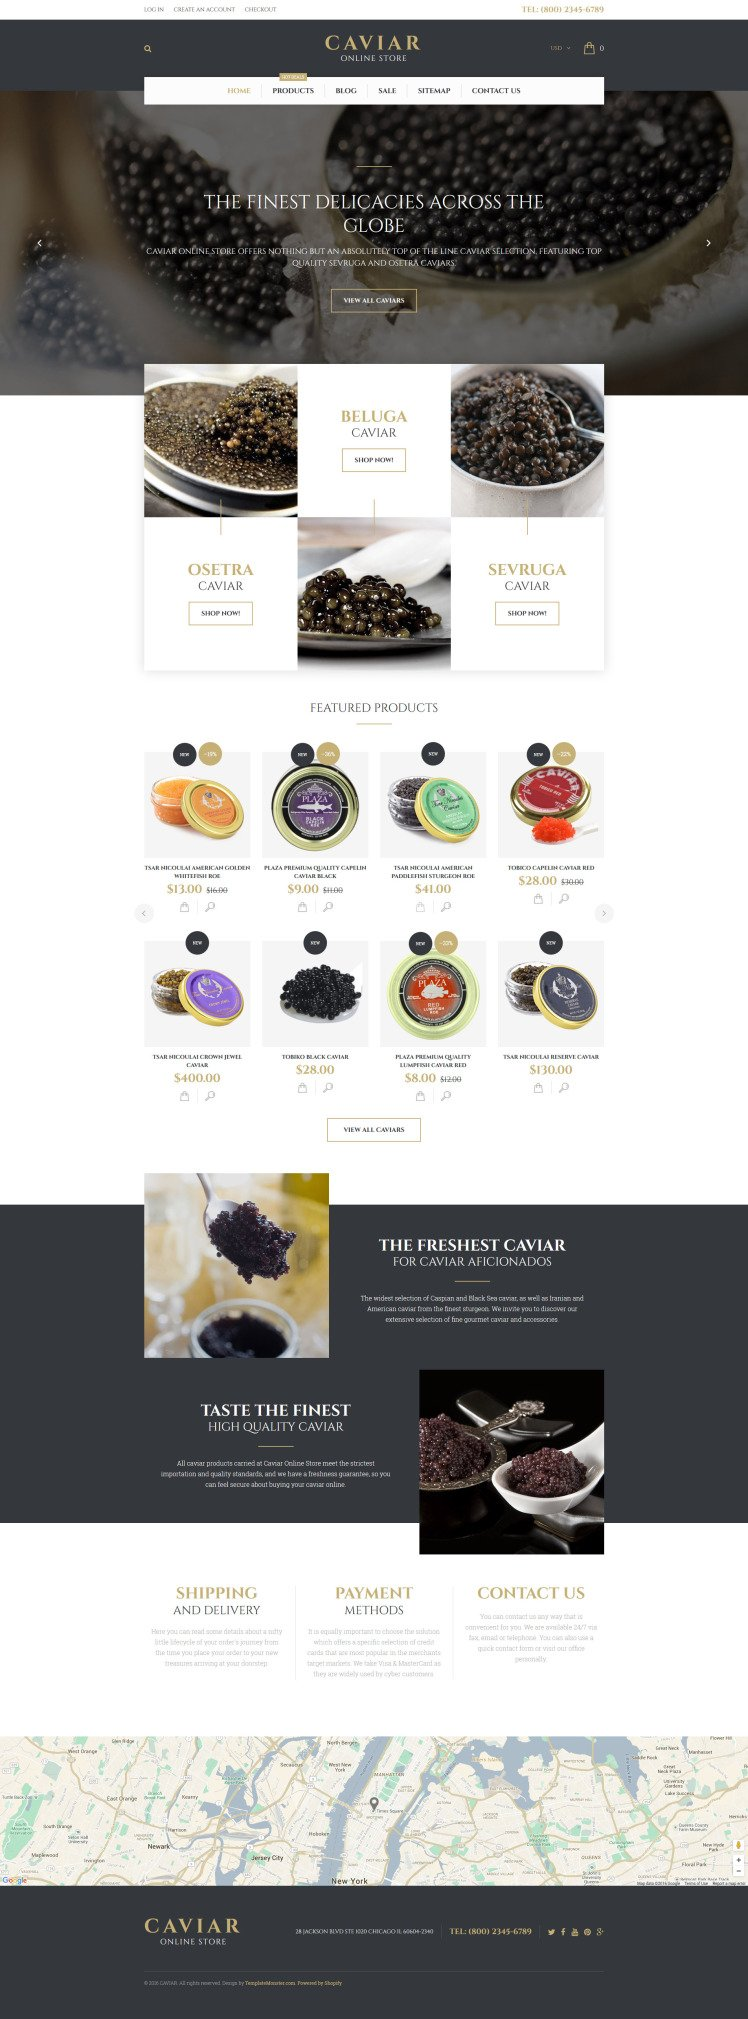 Caviar Shopify Themes